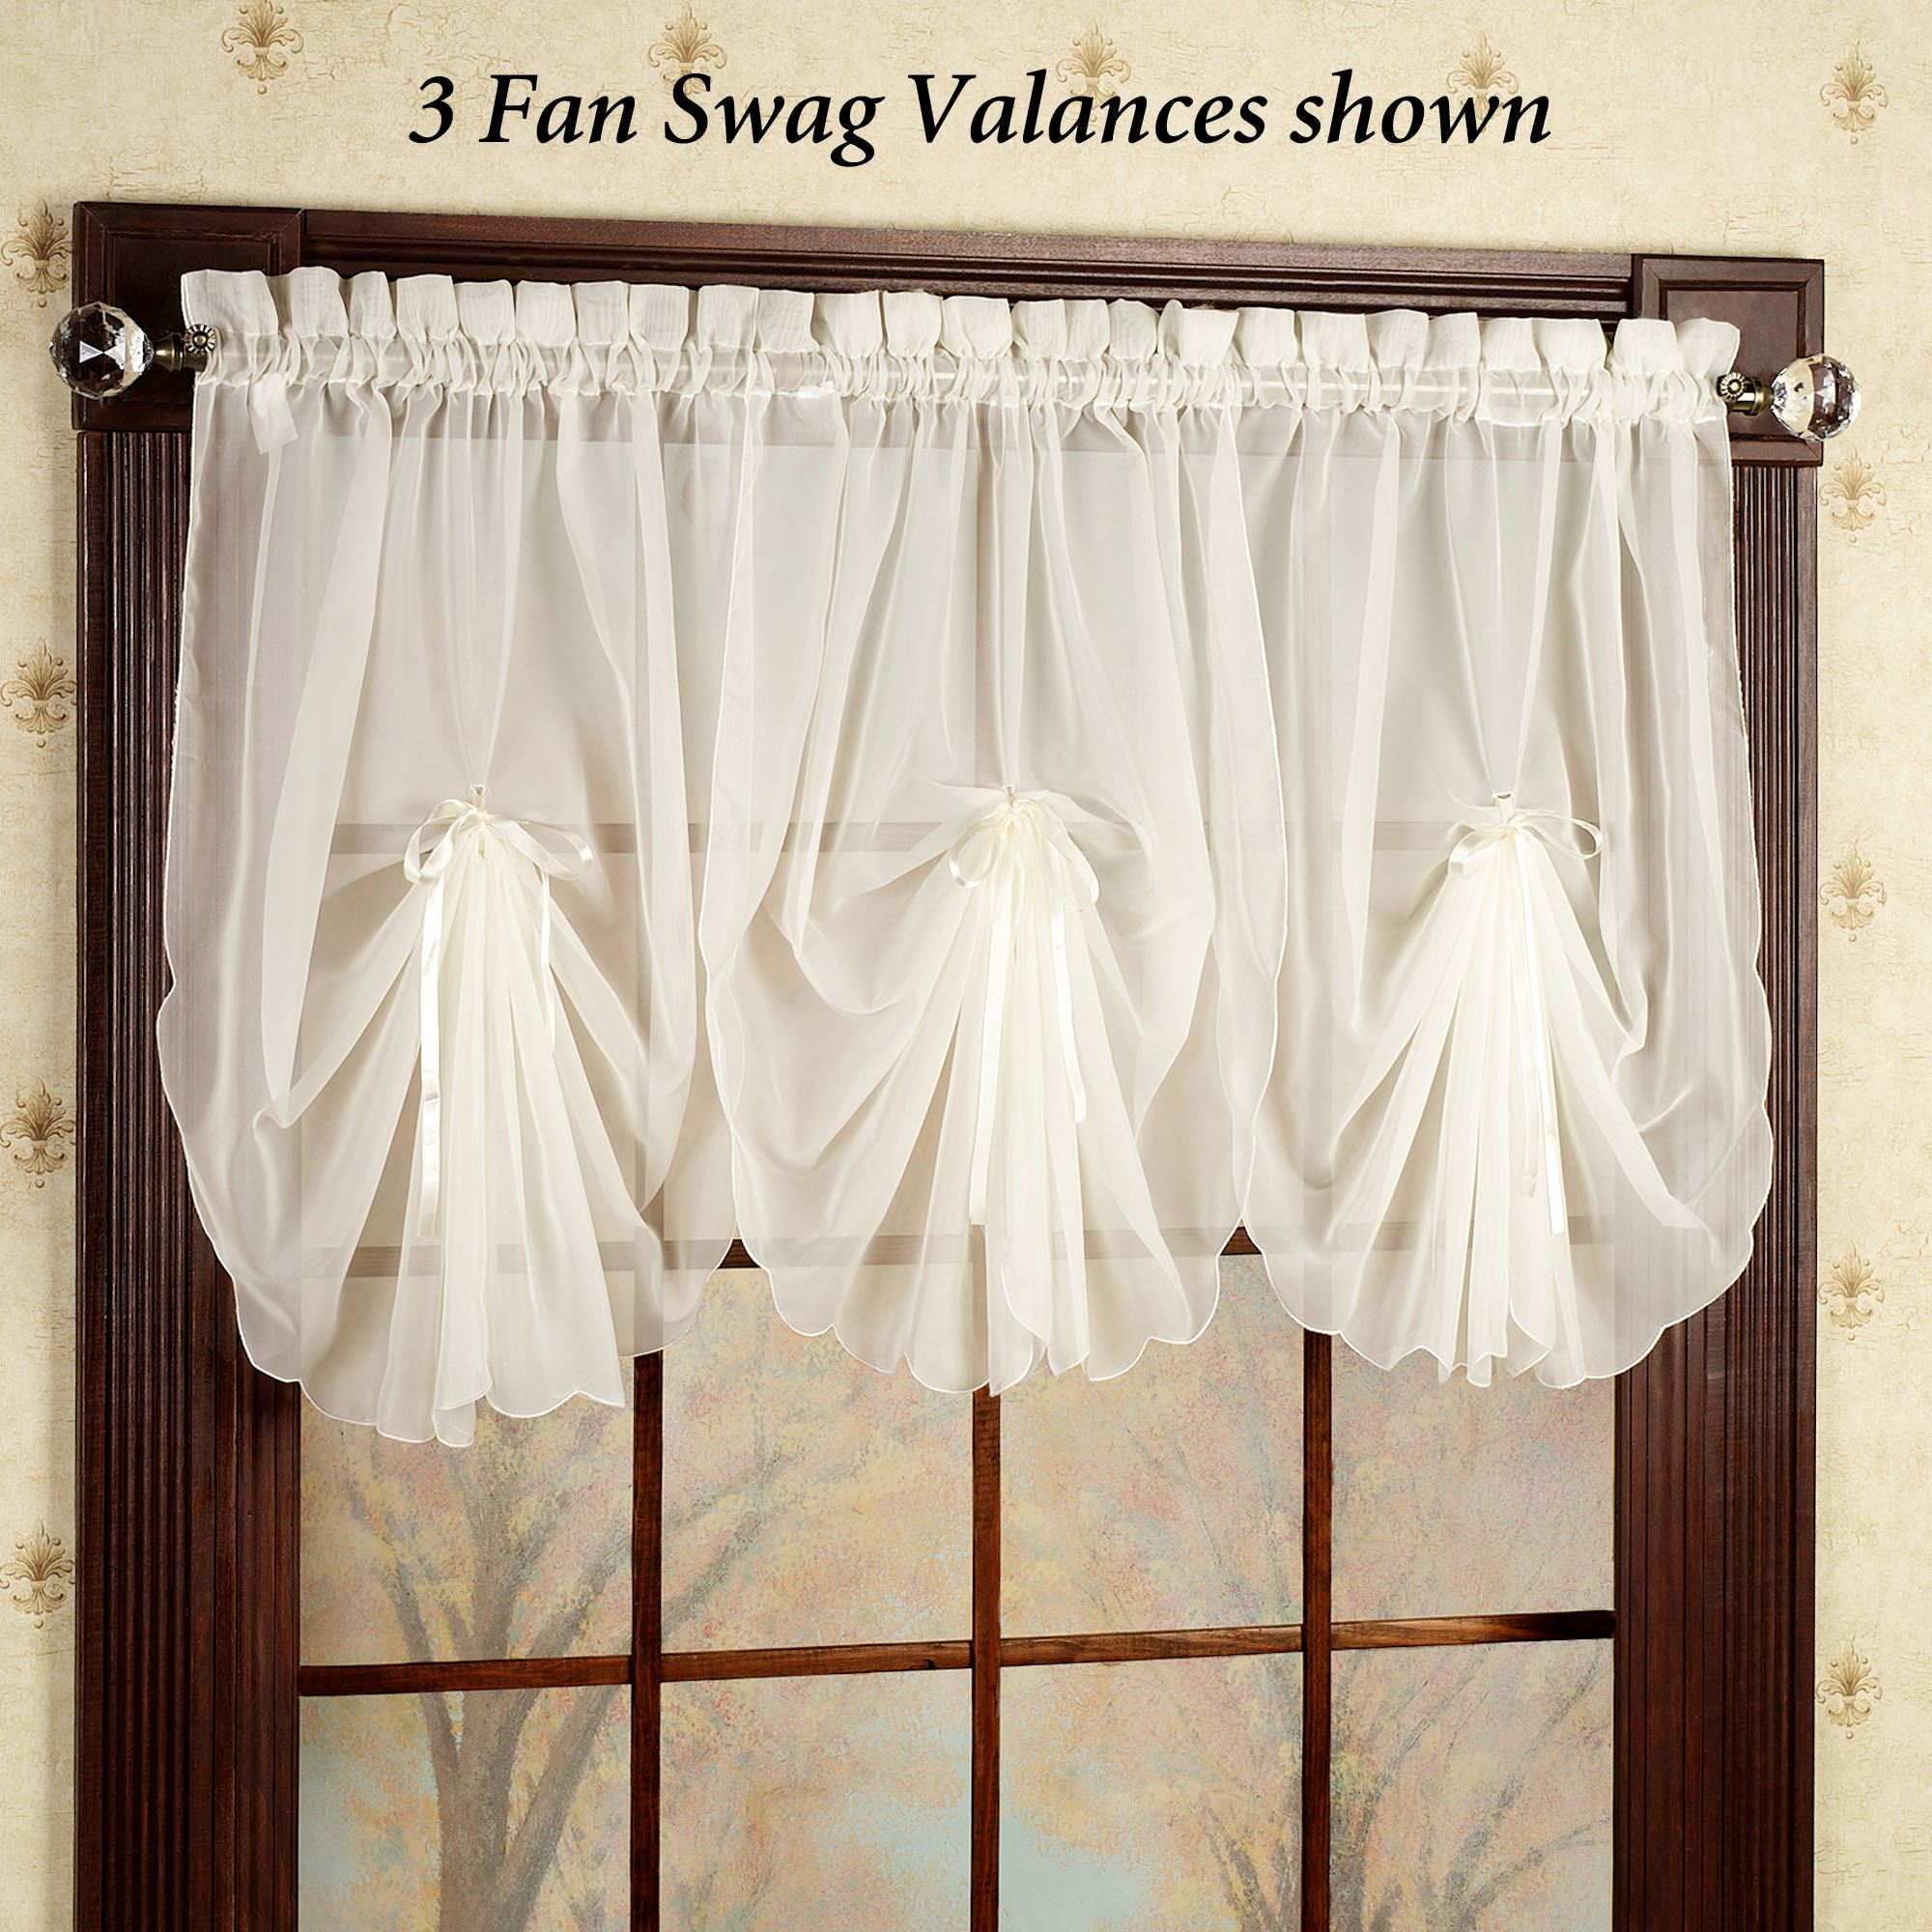 valances valance bedroom x for expand emelia sheer p to click swag fan